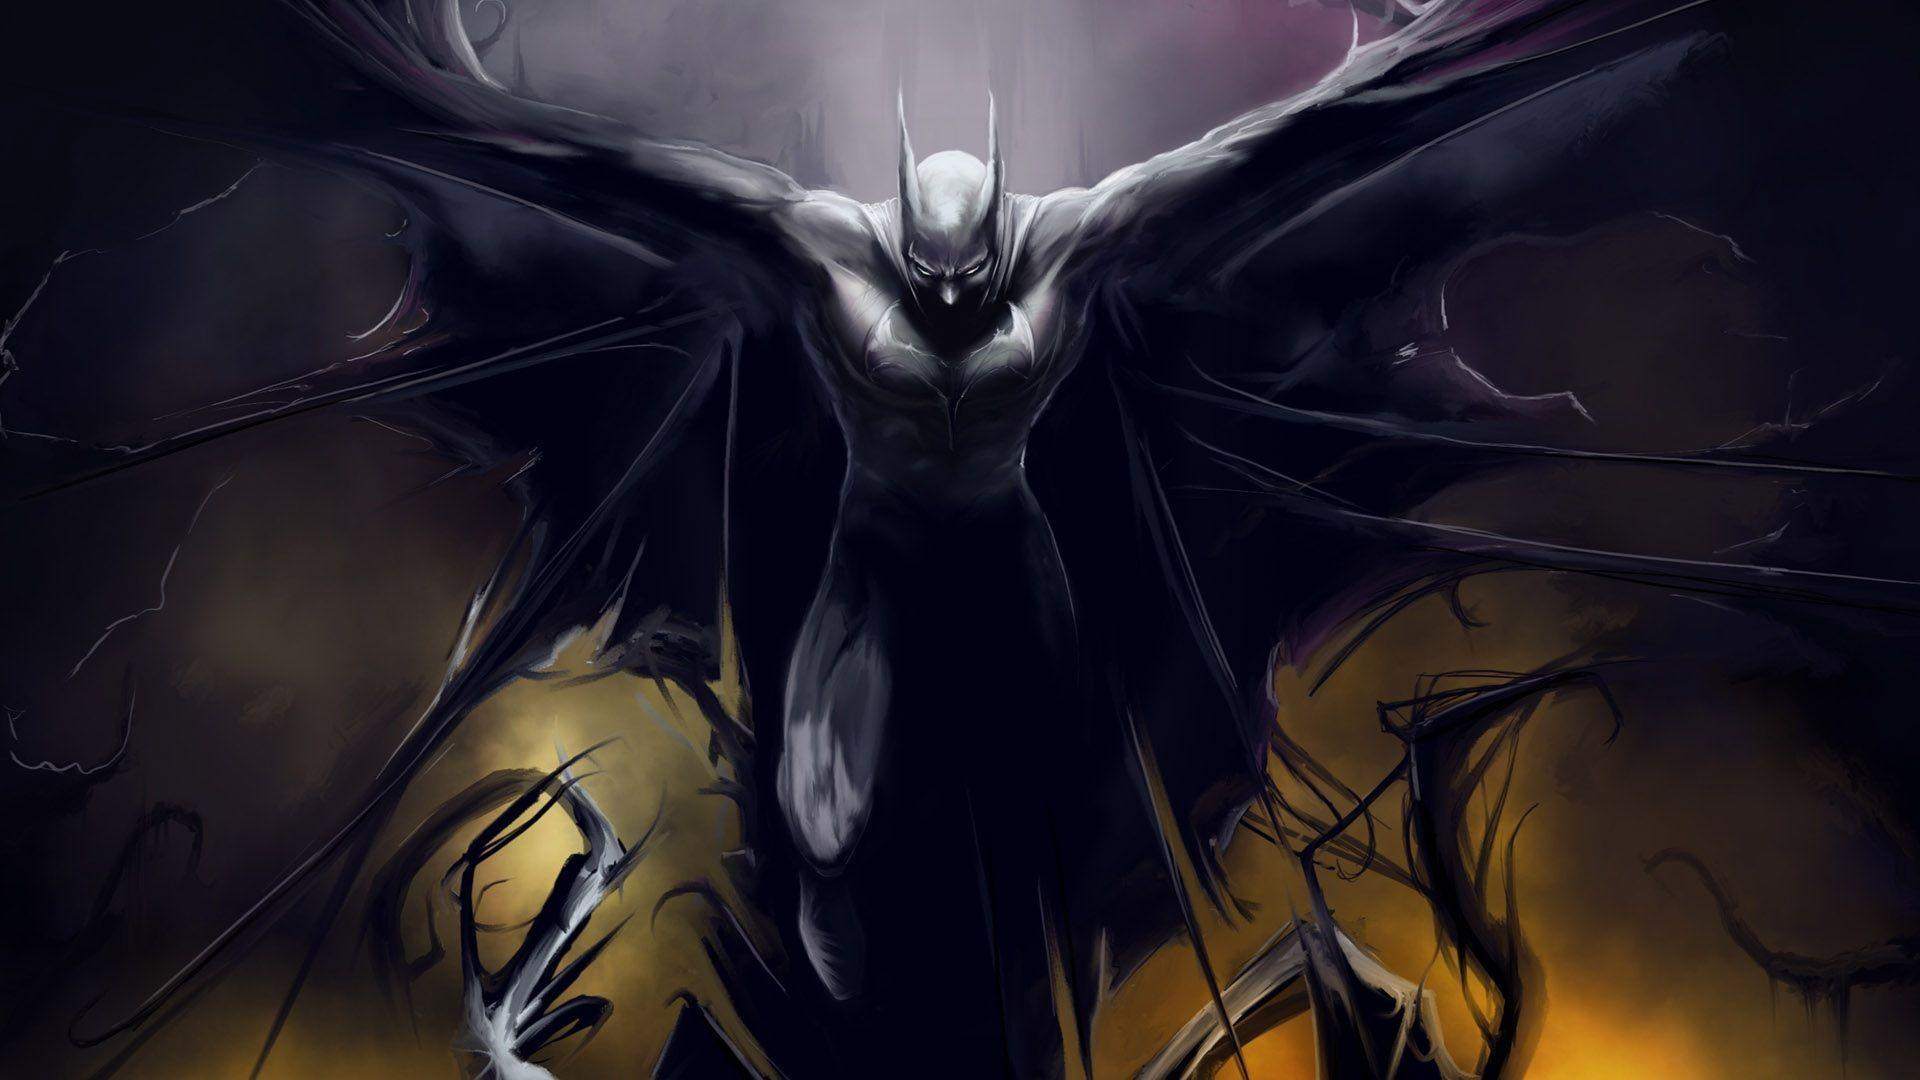 Badass Batman HD Wallpaper